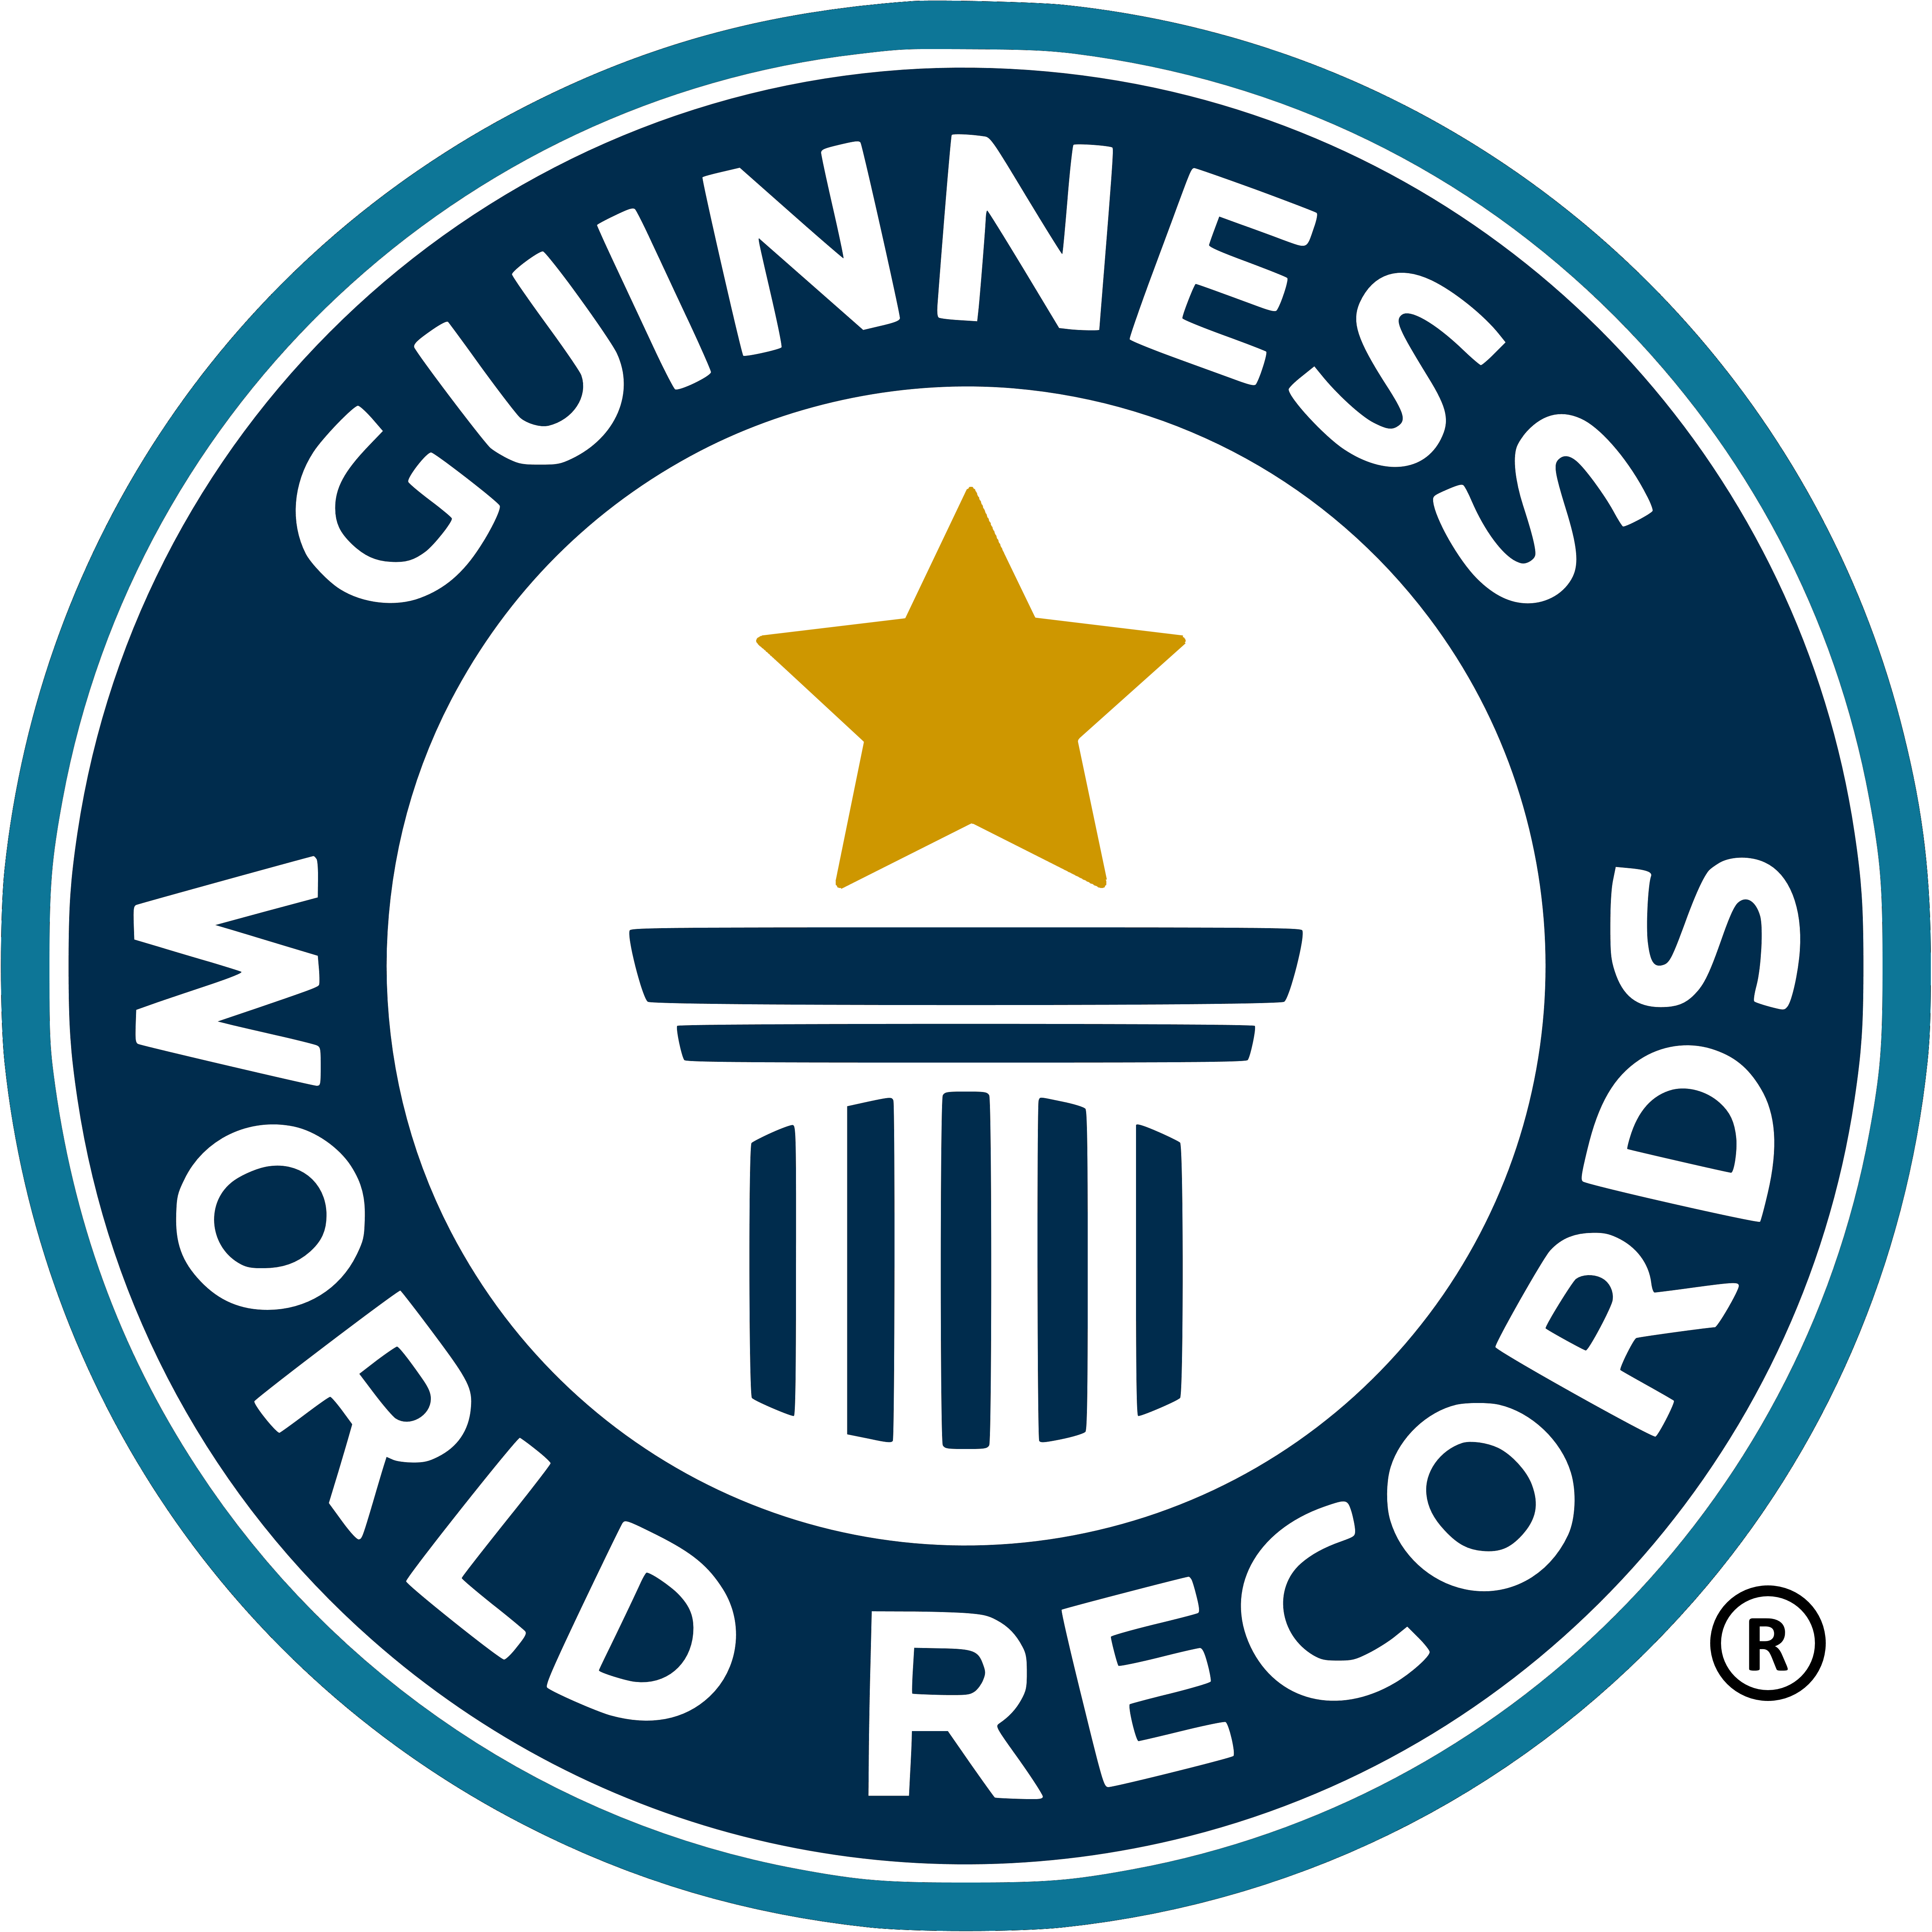 Guinness world record book download